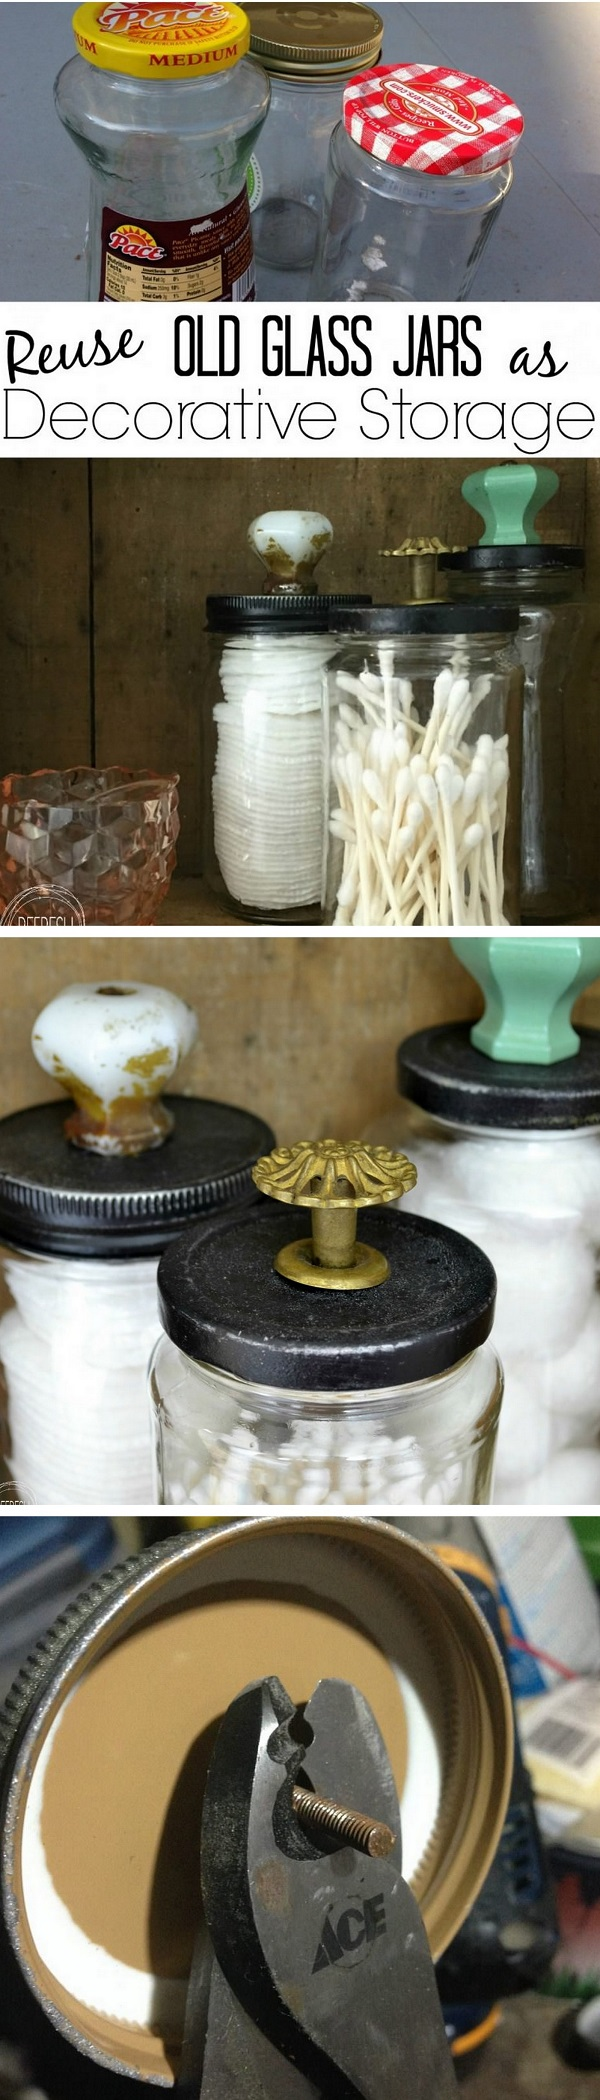 Check out how to reuse old jars for DIY bathroom organization